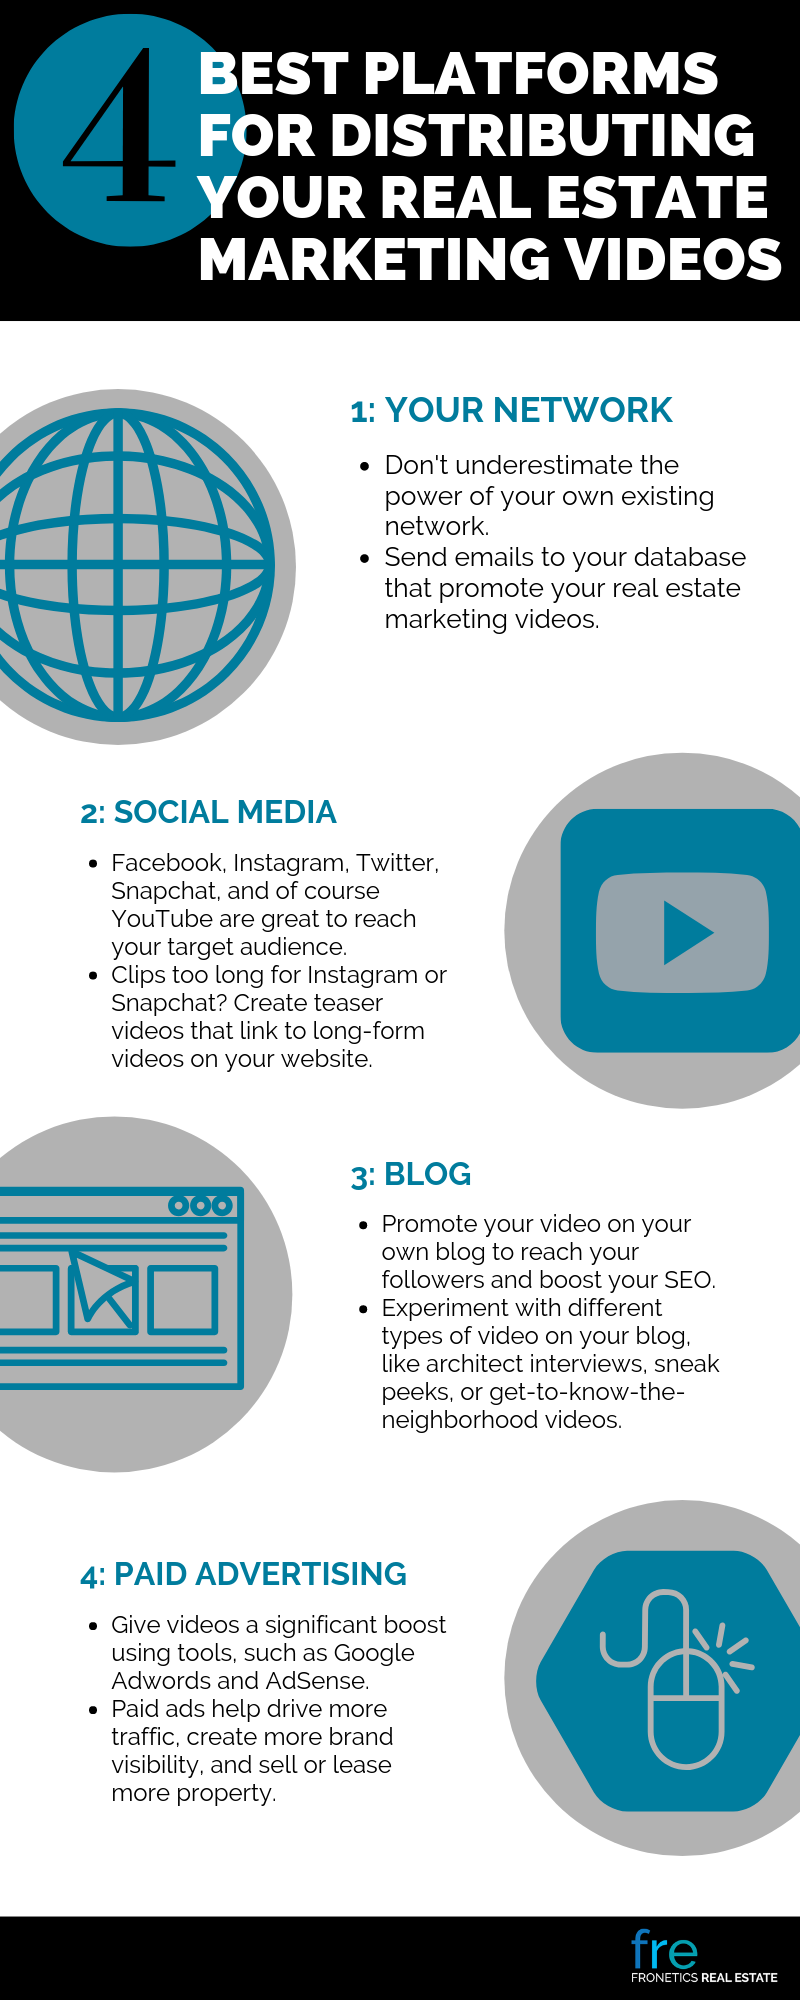 4 Distribution Channels for Real Estate Marketing Videos